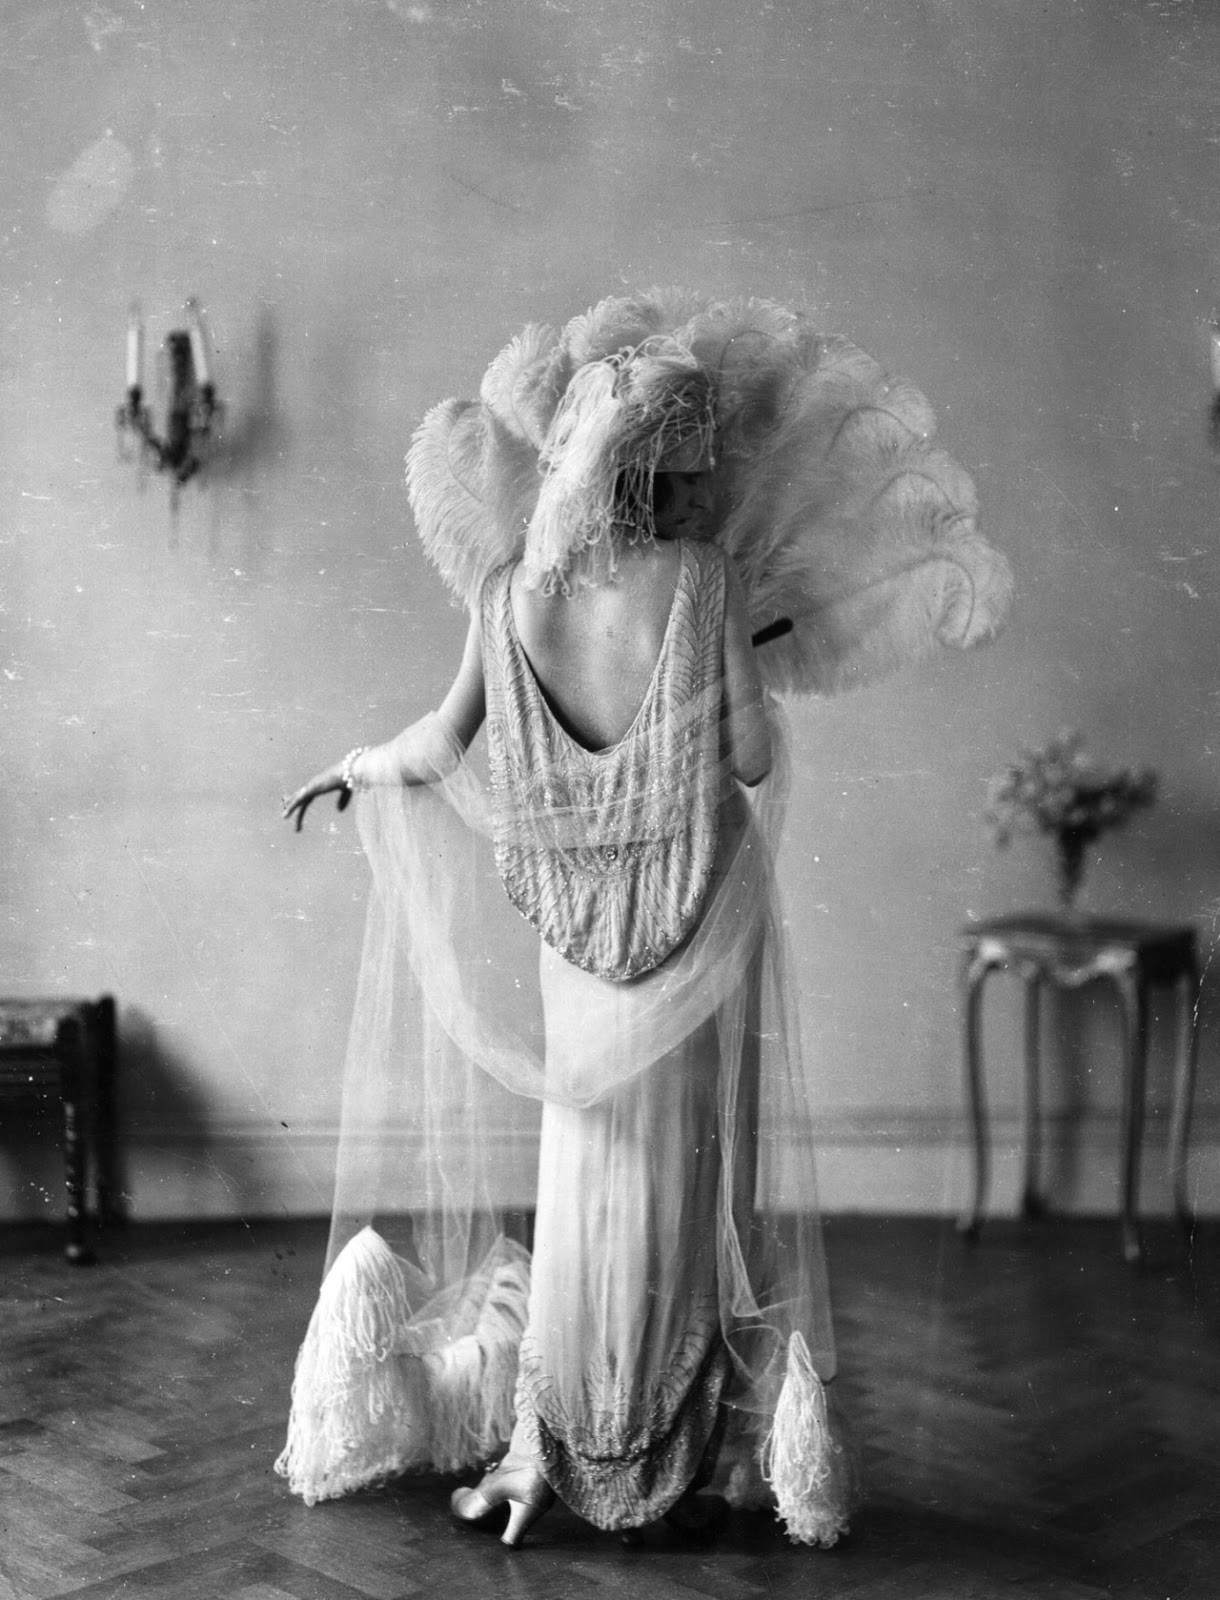 15 Vintage Photos Show Beautiful Fashion Of The 1920s